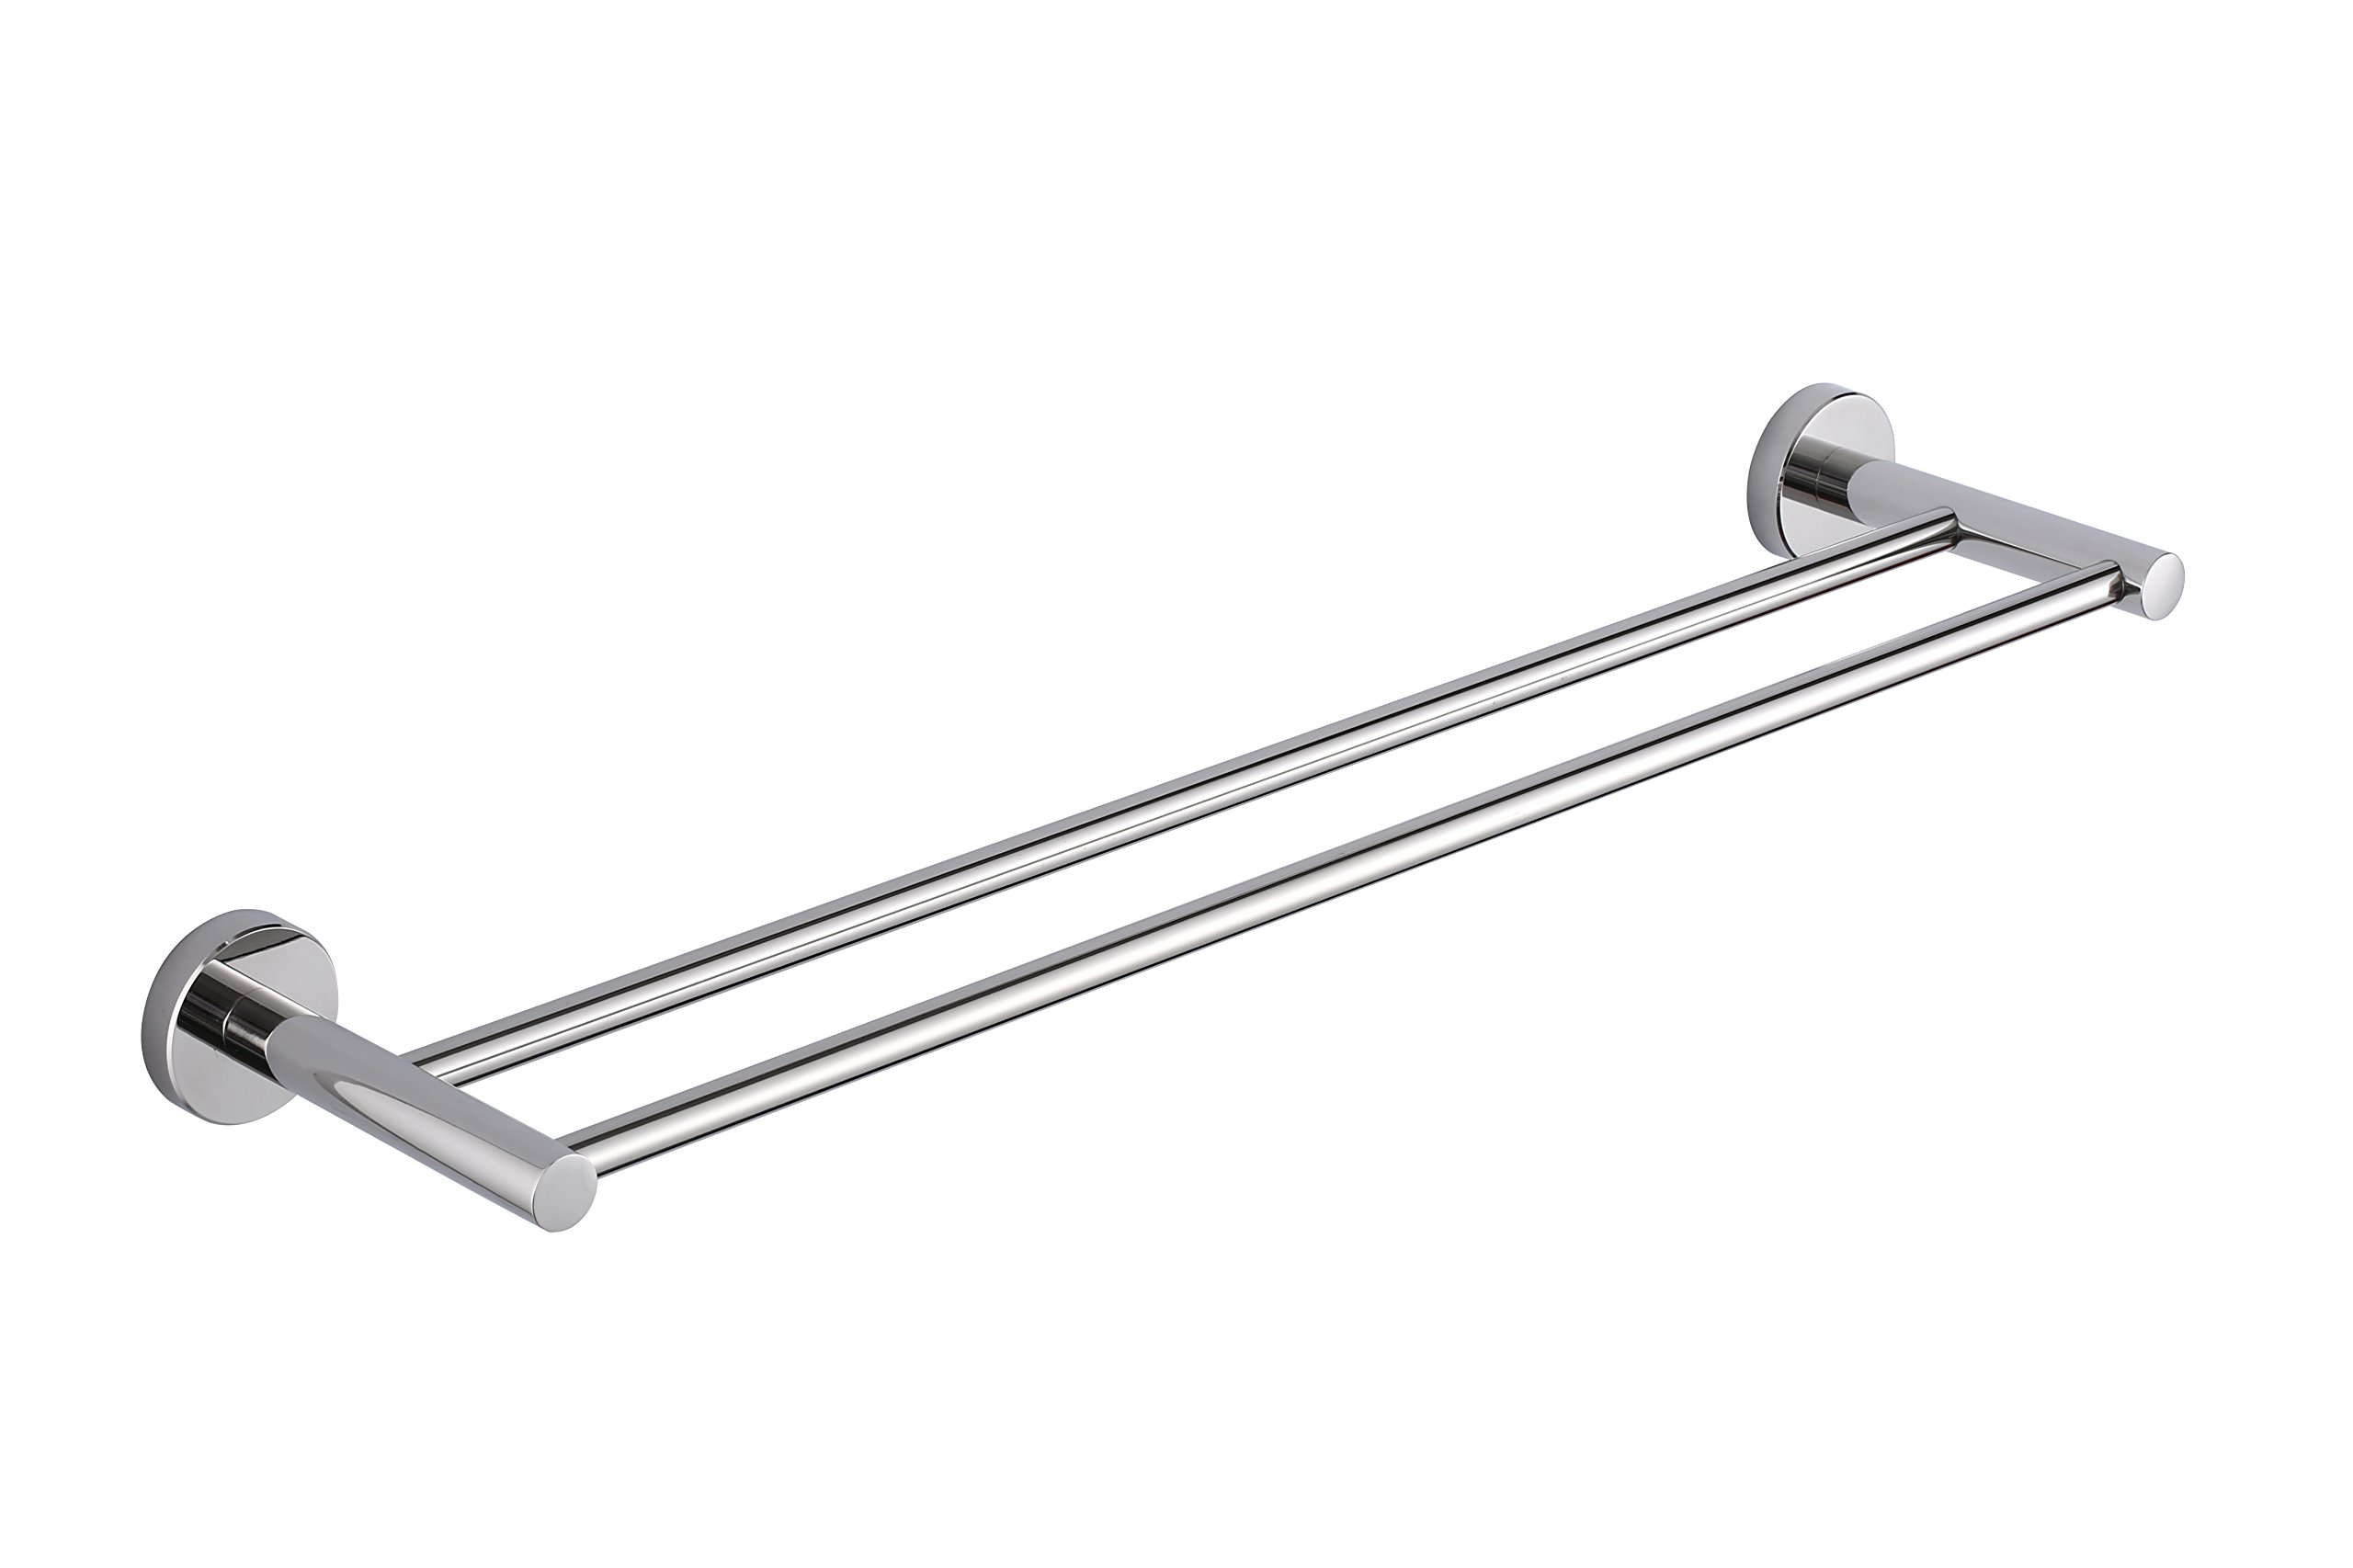 KTY 24-Inch Double Towel Bar Bathroom Shower Organization Bath Dual Towel Hanger Holder Polished SUS 304 Stainless Steel Finish